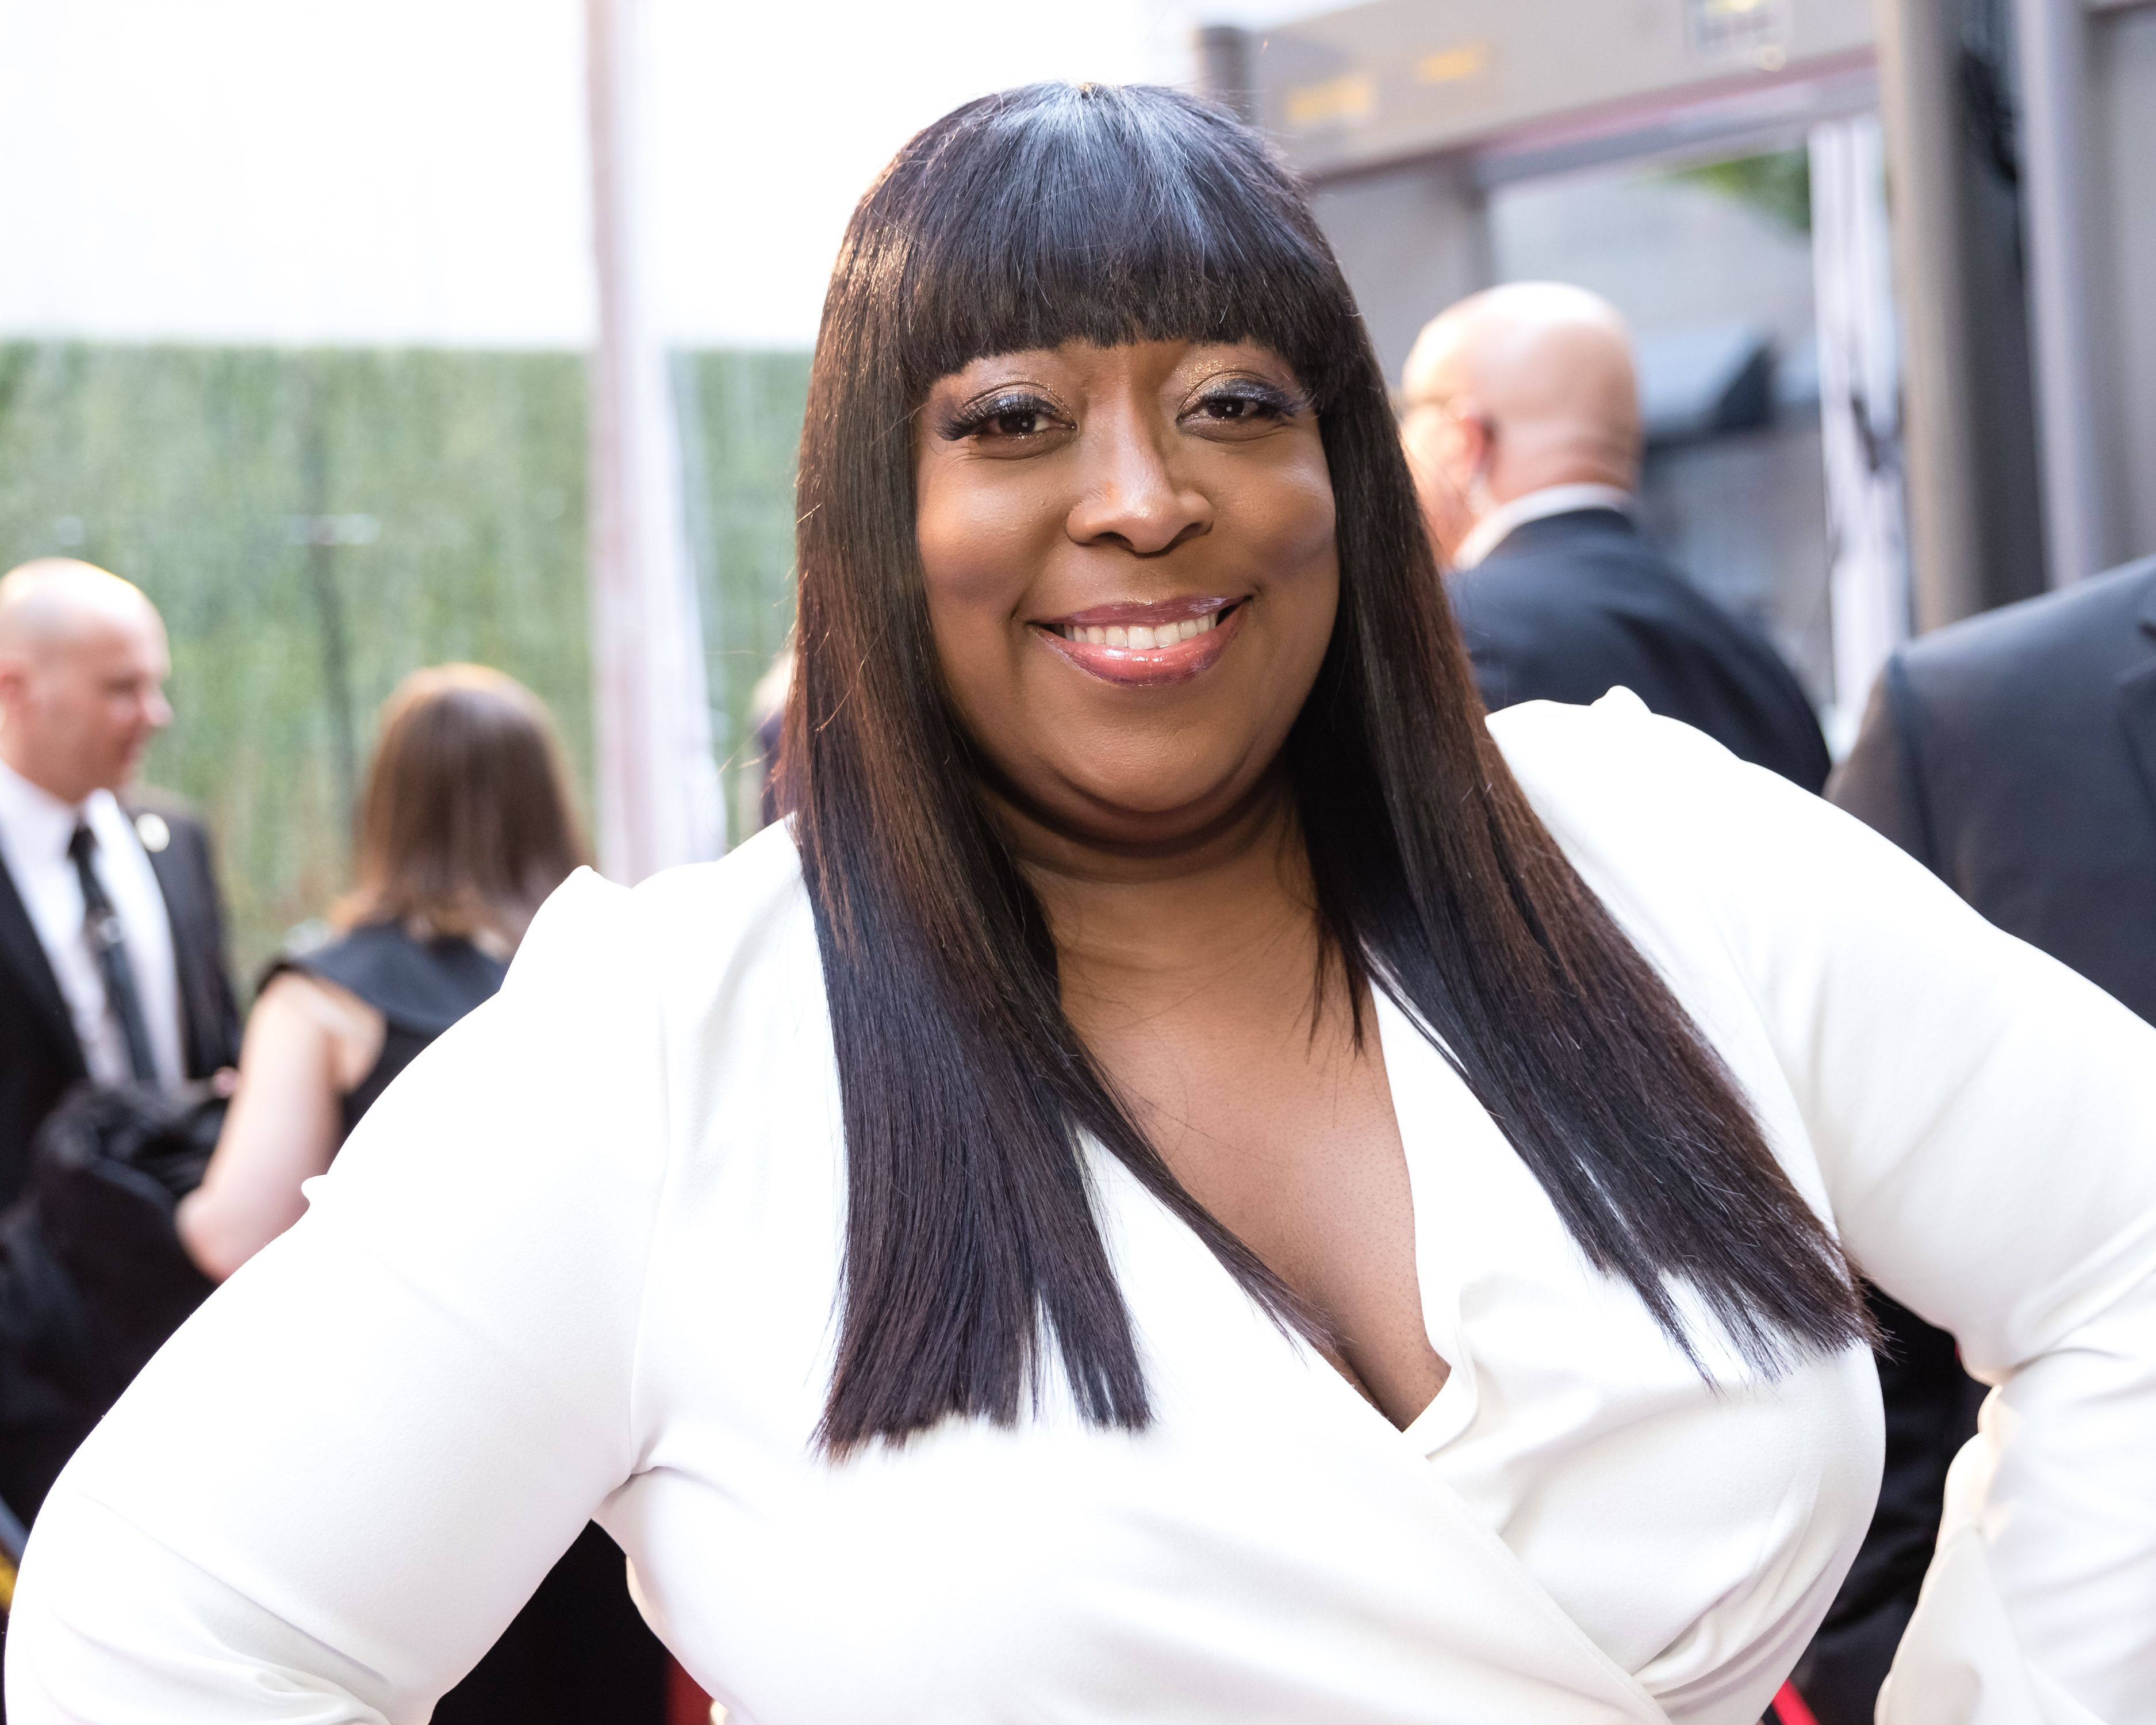 Loni Love attends Byron Allen's 4th Annual Oscar Gala to Benefit Children's Hospital Los Angeles at the Beverly Wilshire, A Four Seasons Hotel on February 09, 2020 in Los Angeles, California. | Source: Getty Images